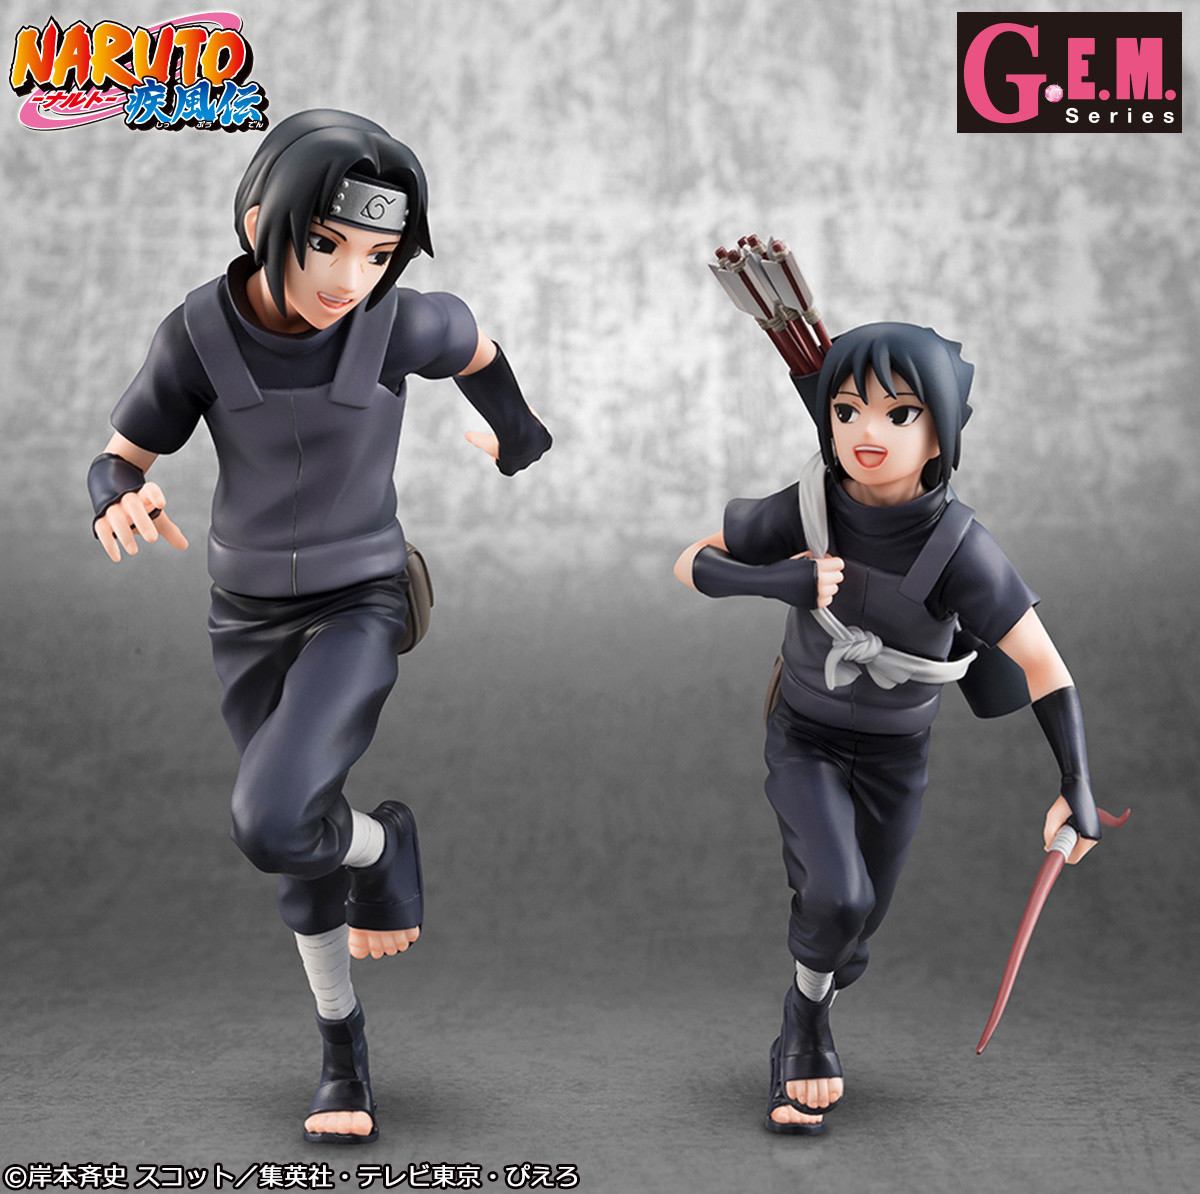 Itachi And Sasuke S Childhood Immortalized In New Figure